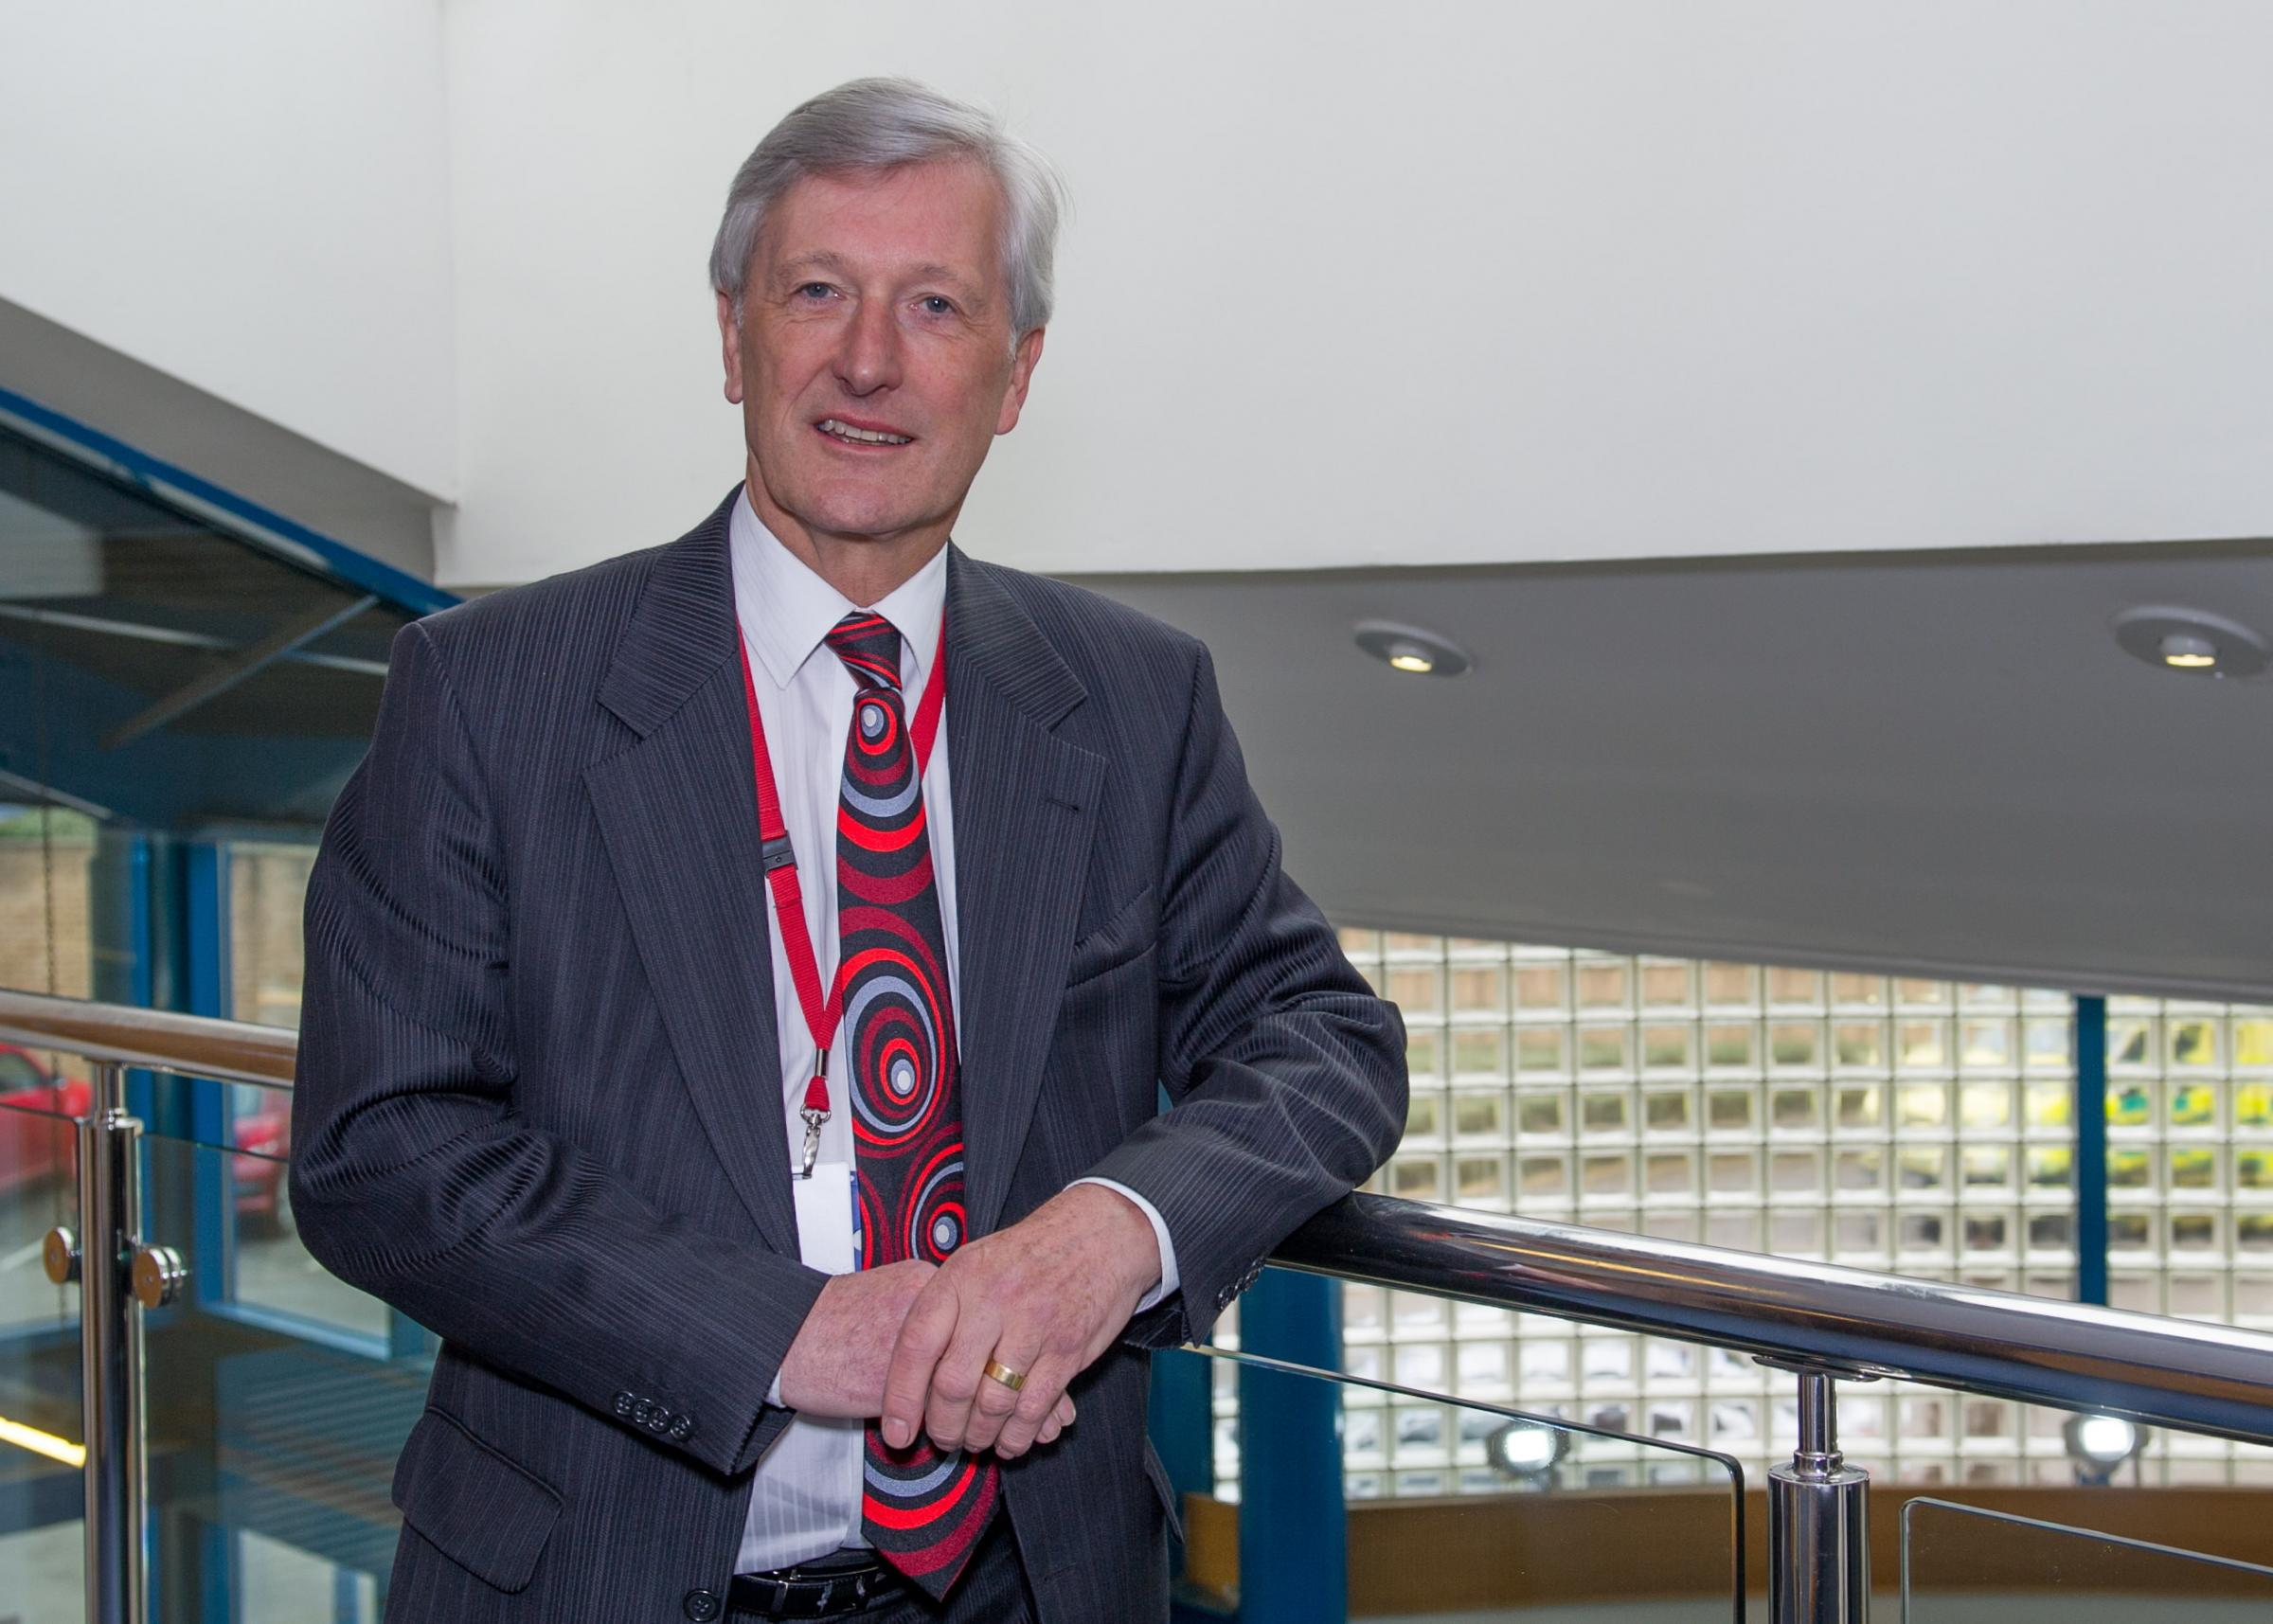 Mike Smith, chairman of Bradford District Care NHS Foundation Trust